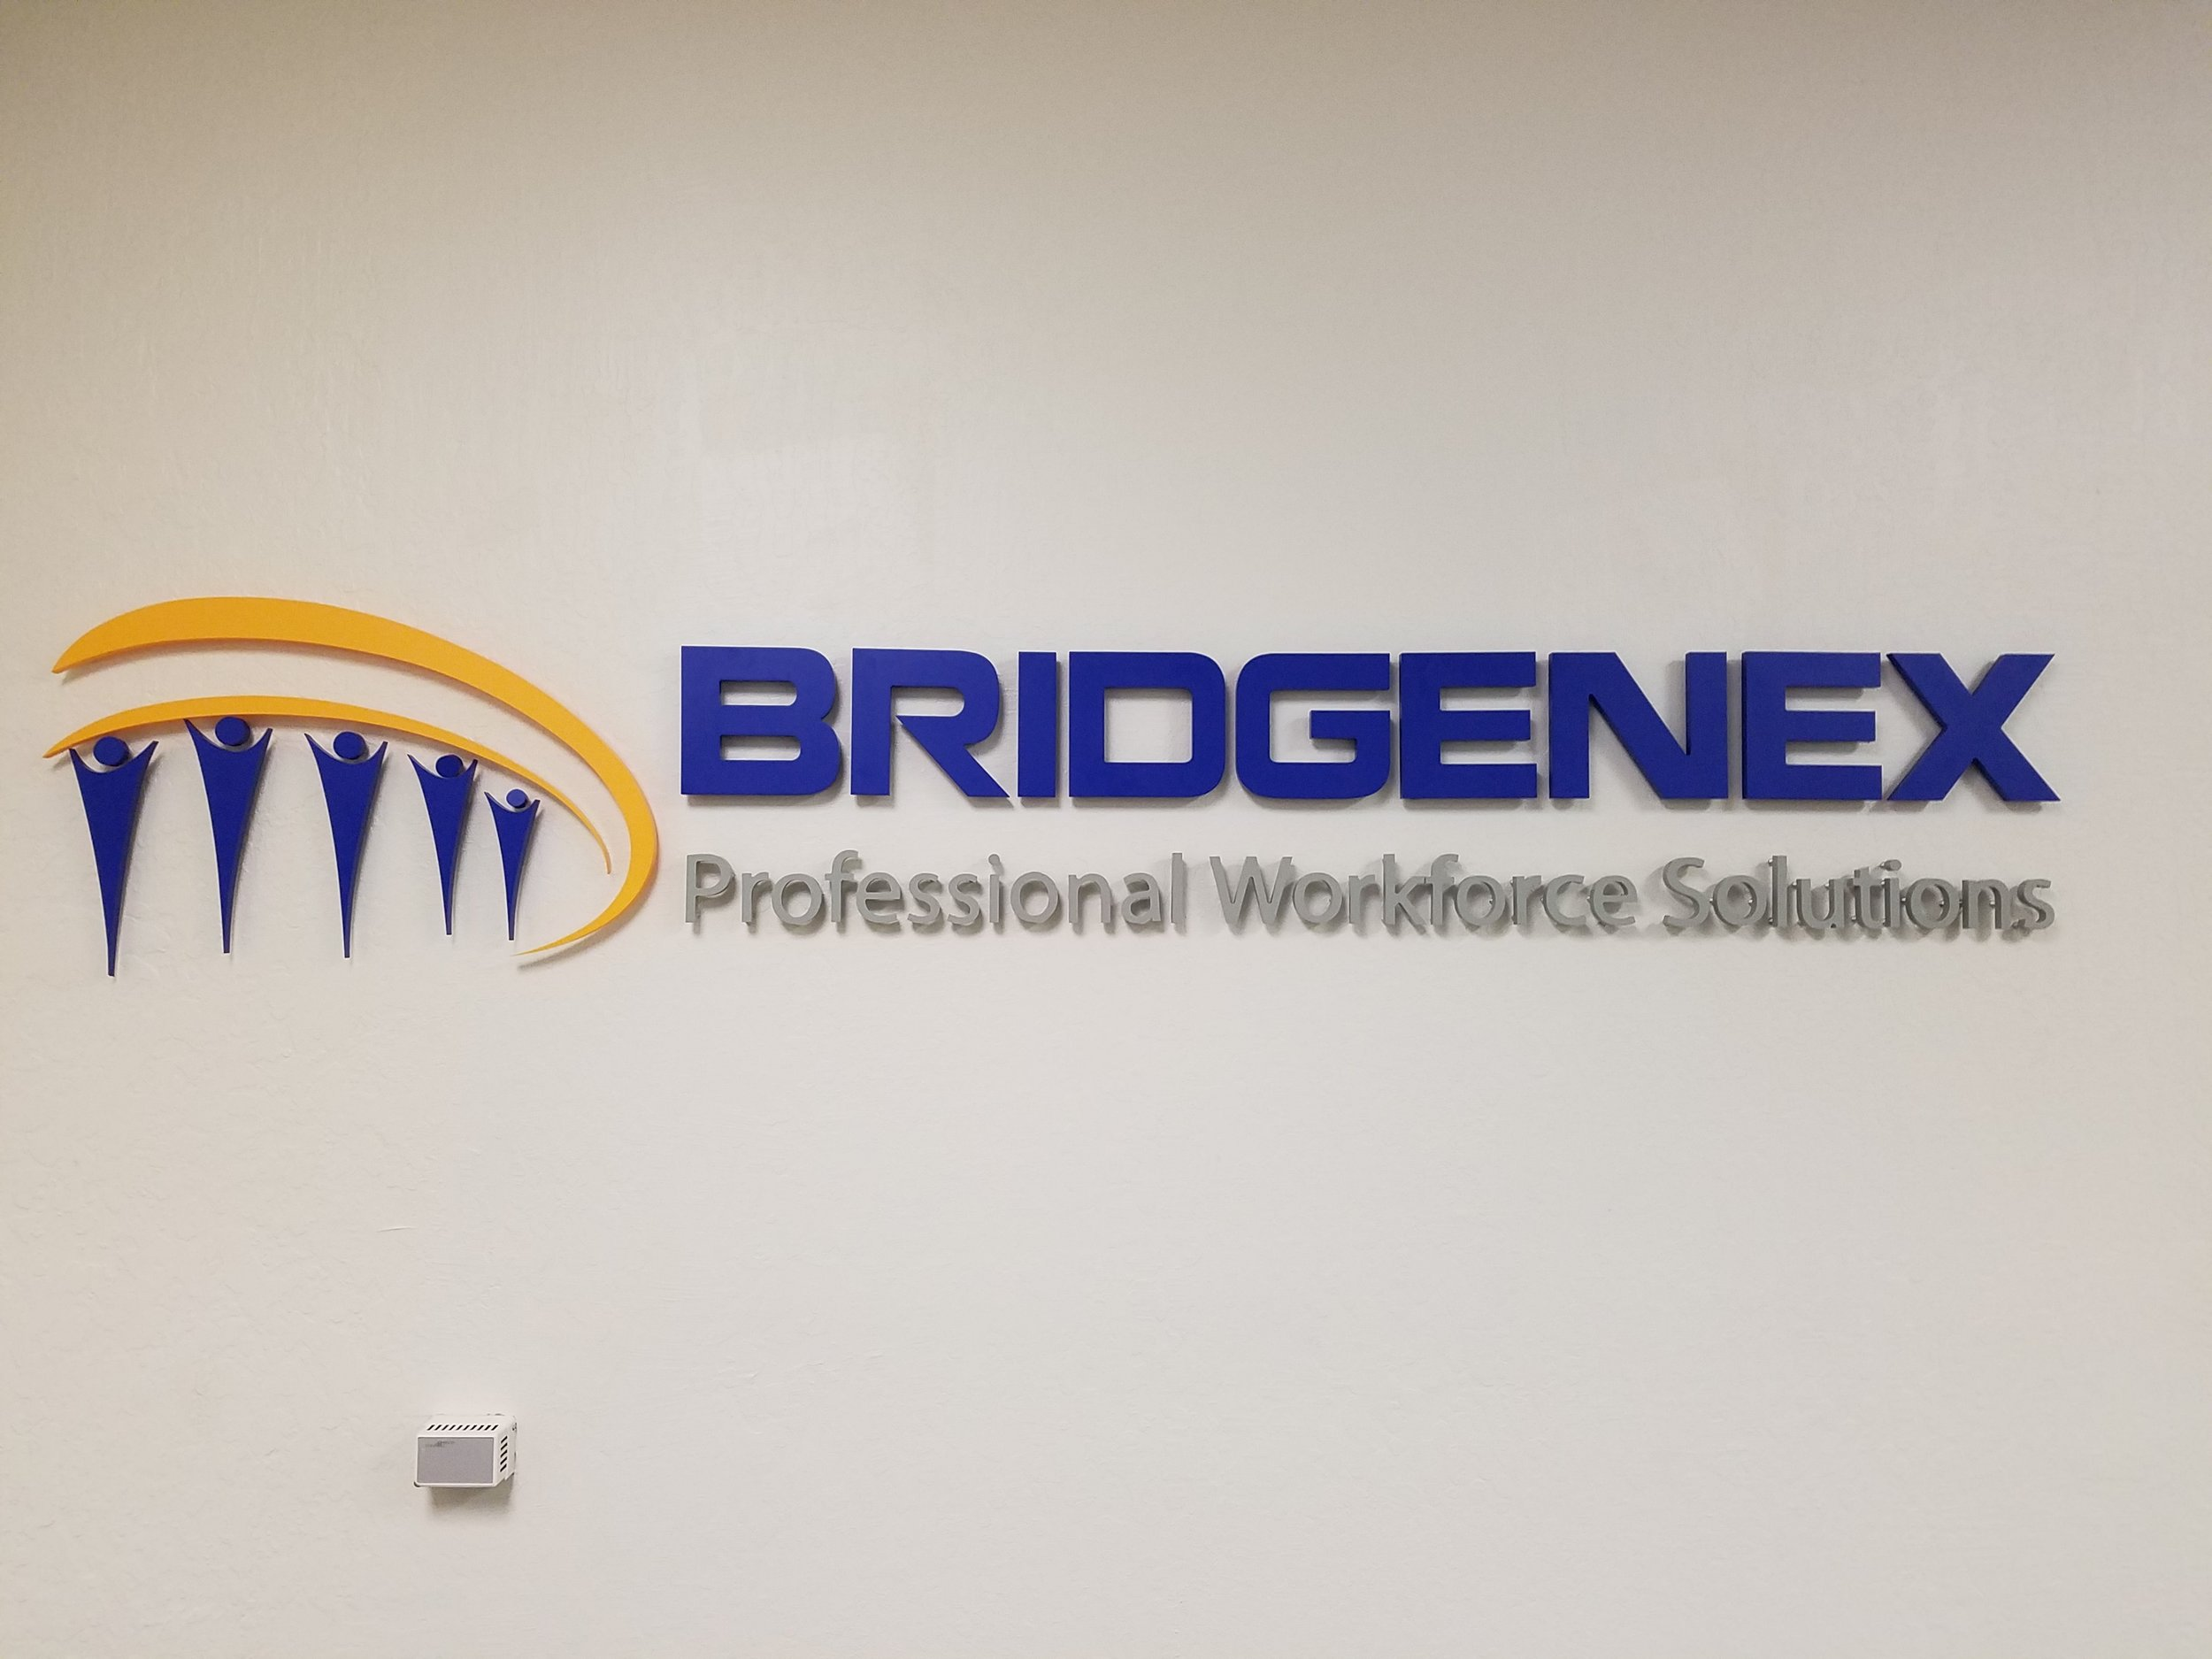 Dimensional-Painted-Acrylic-Signage-min.jpg